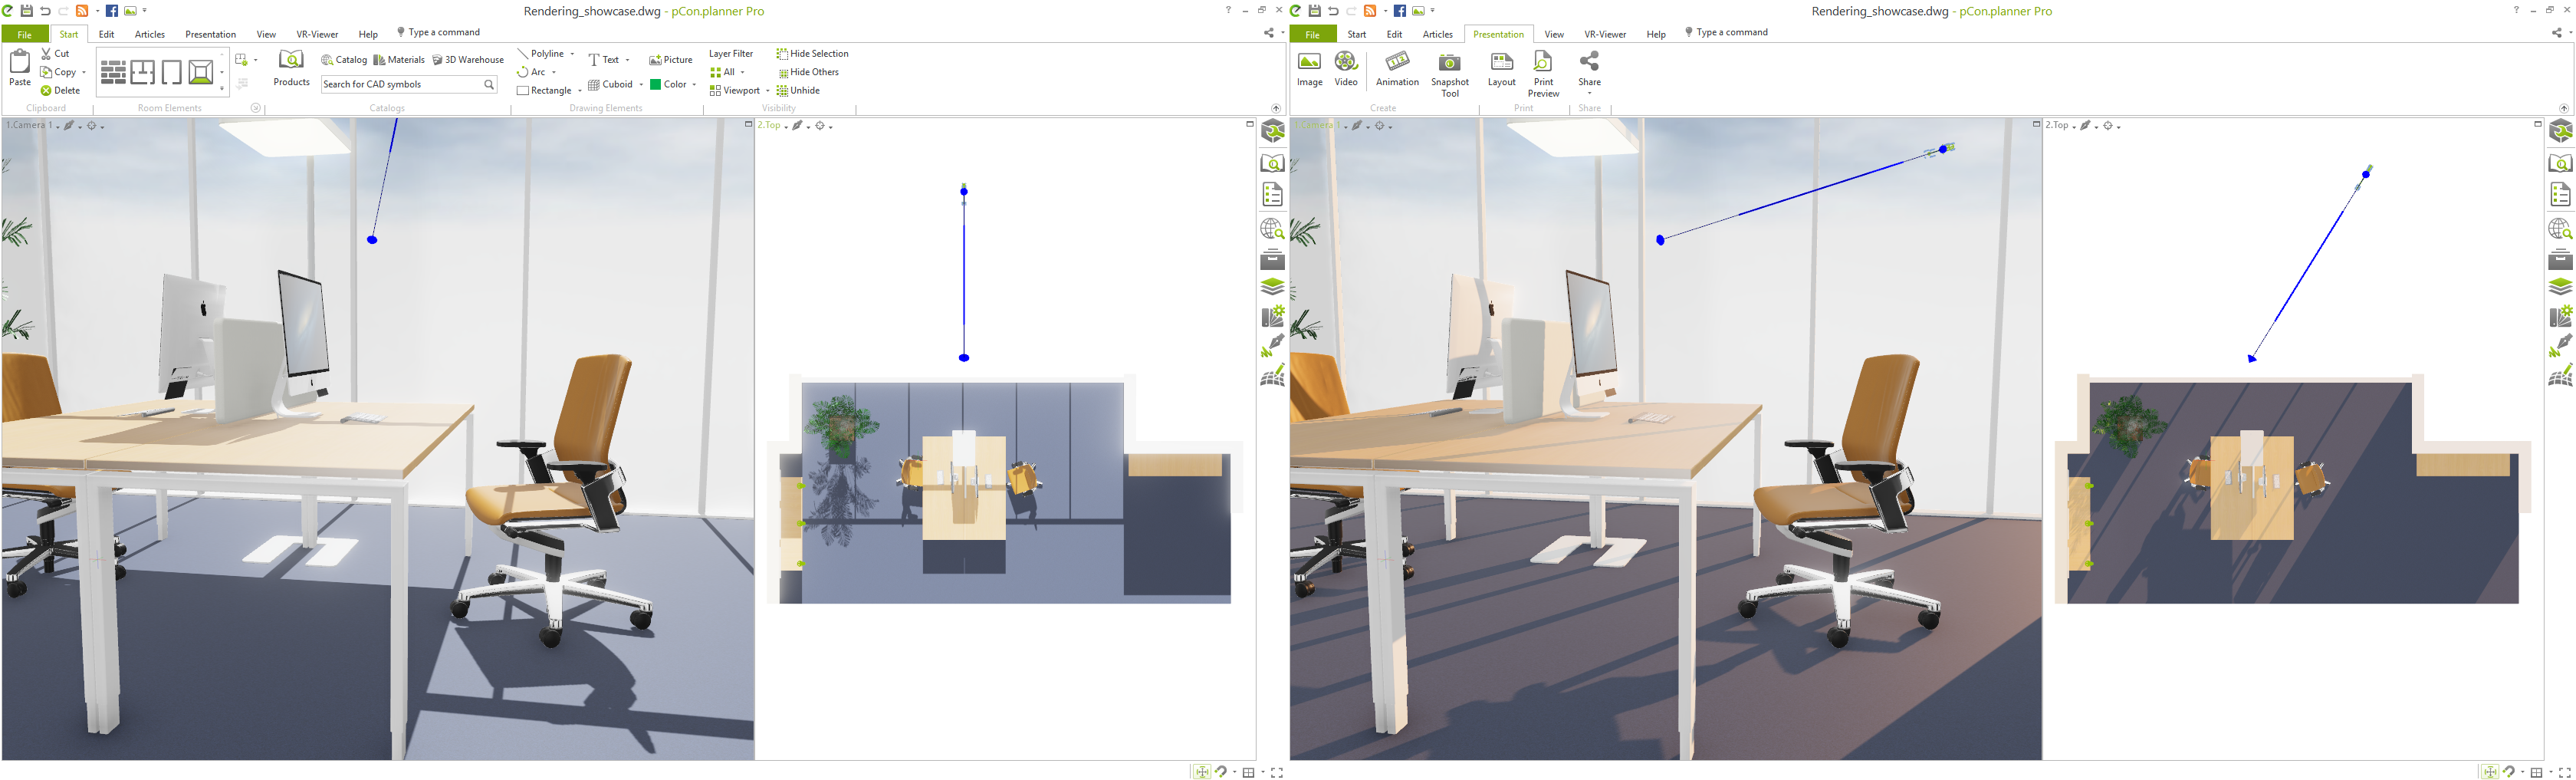 pCon.planner 8.0: A directional light serves as sun and can be adjusted directly in the planning area.